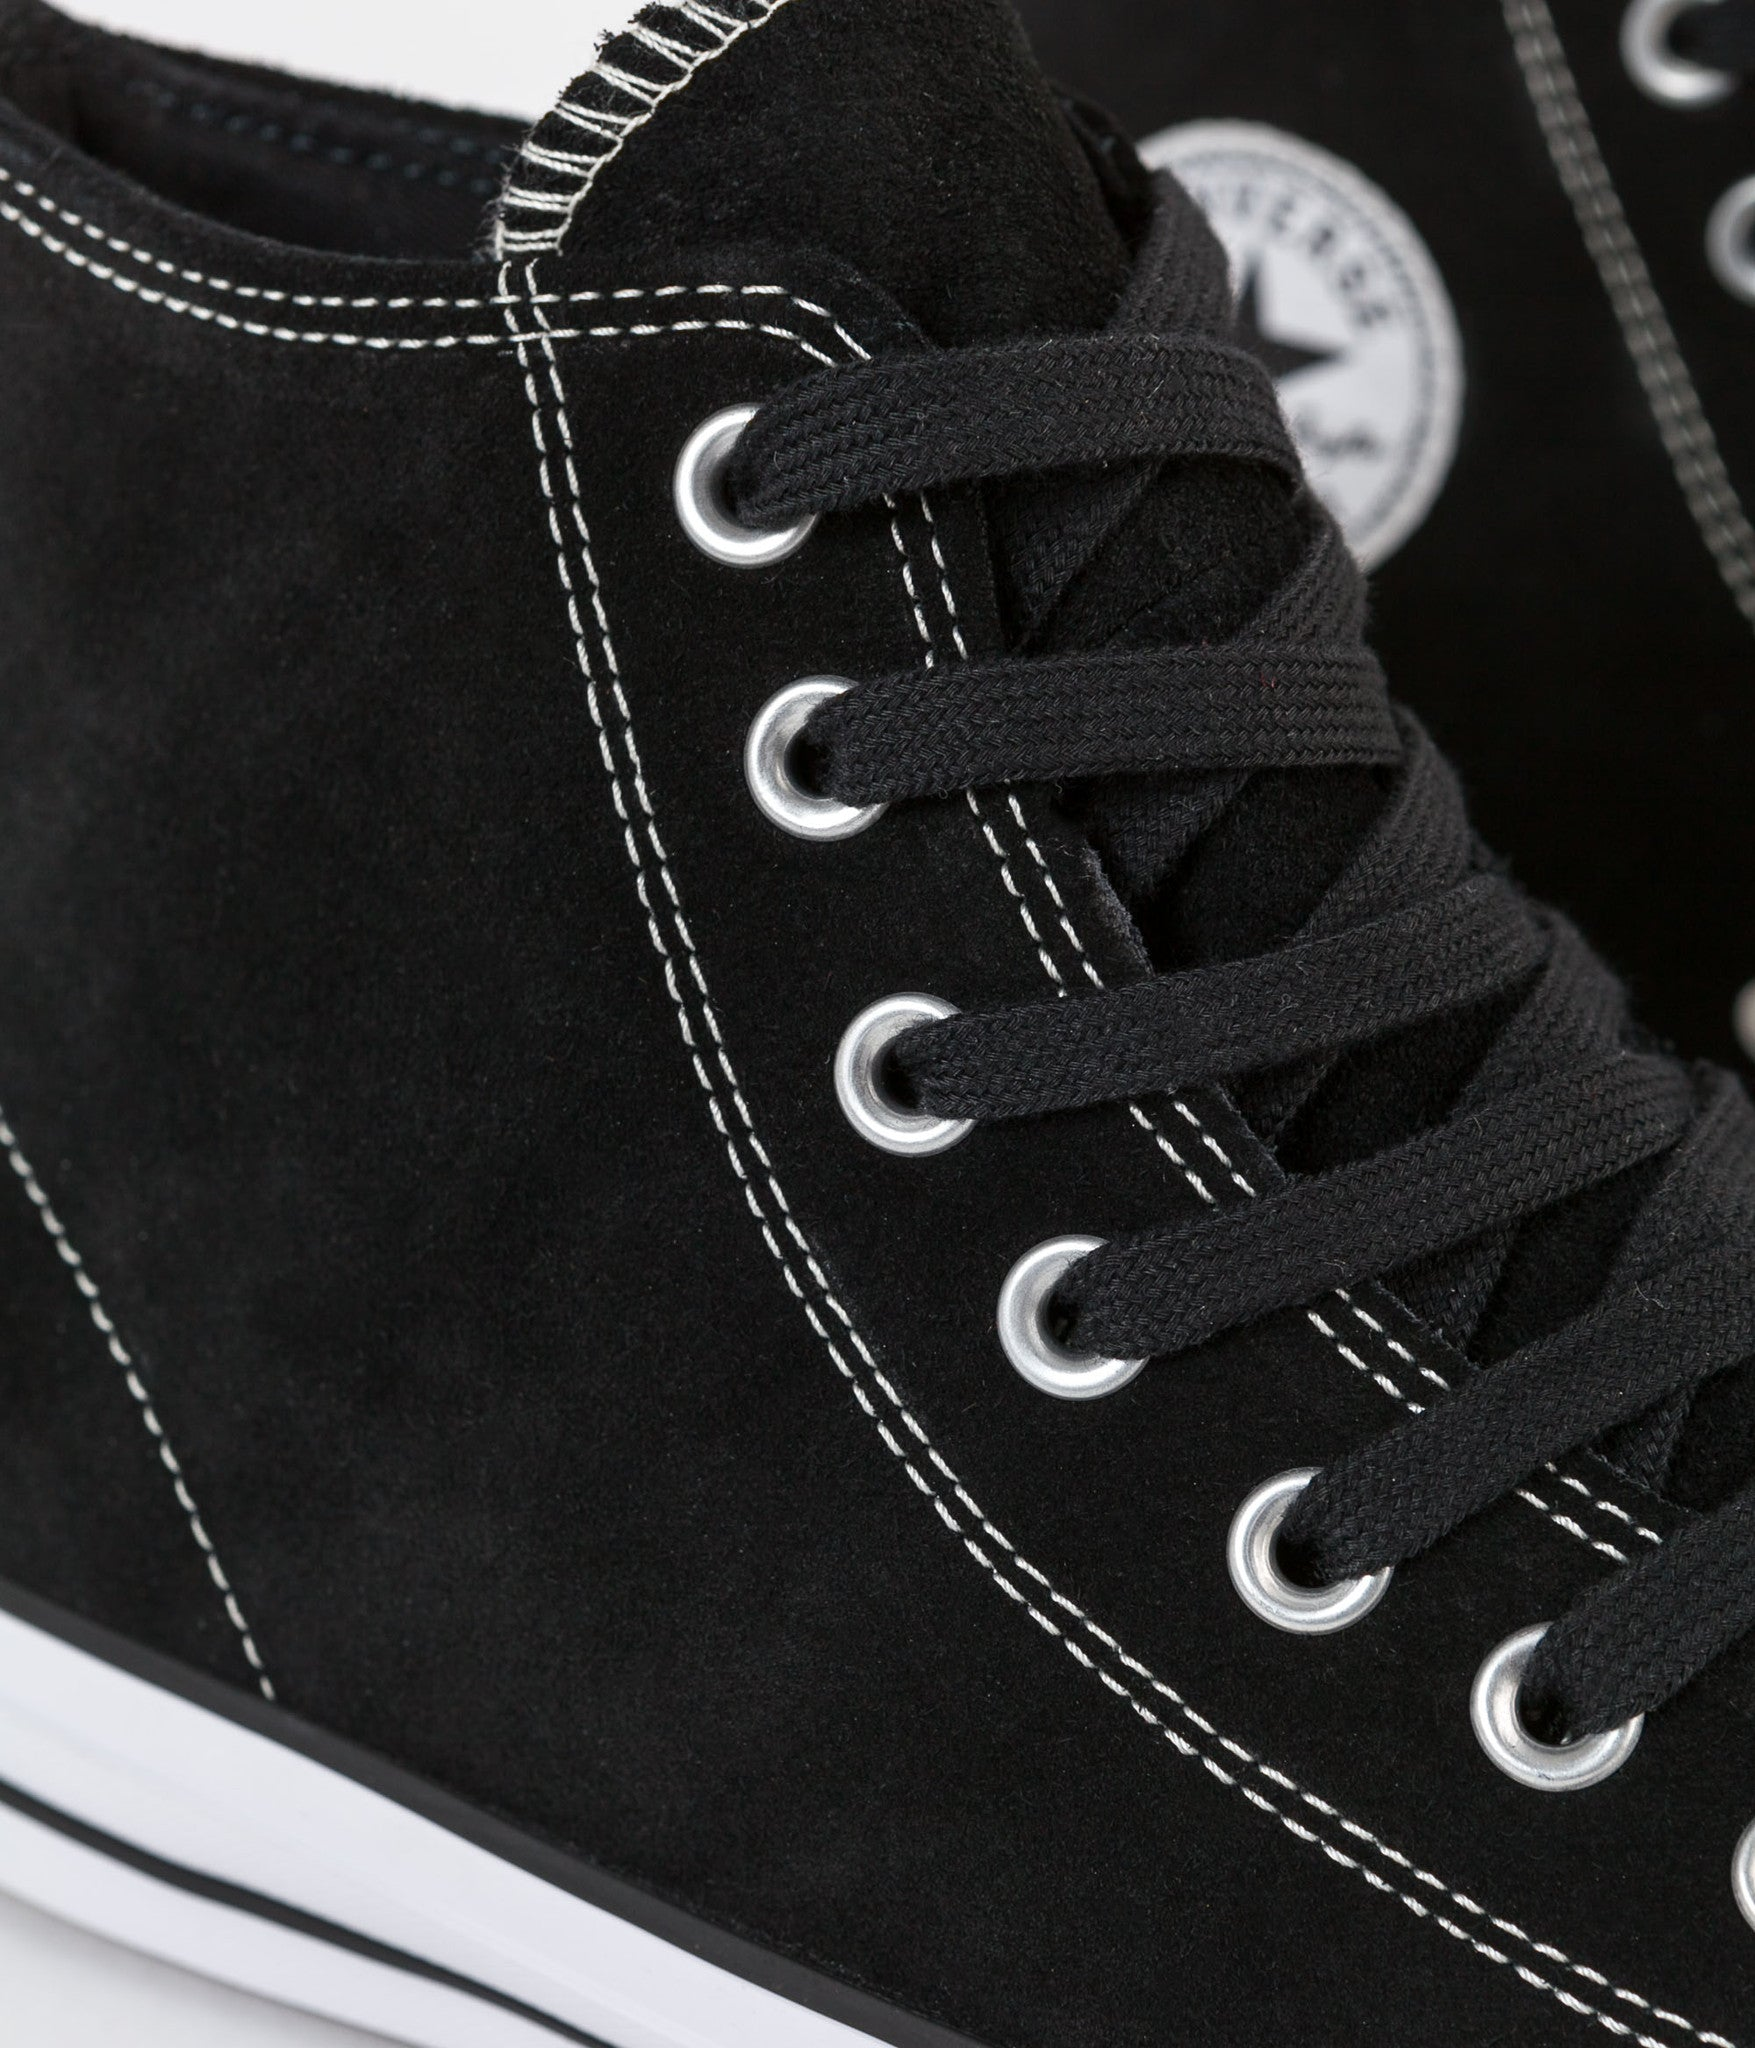 Converse CTAS Pro OX Hi Shoes - Black / White